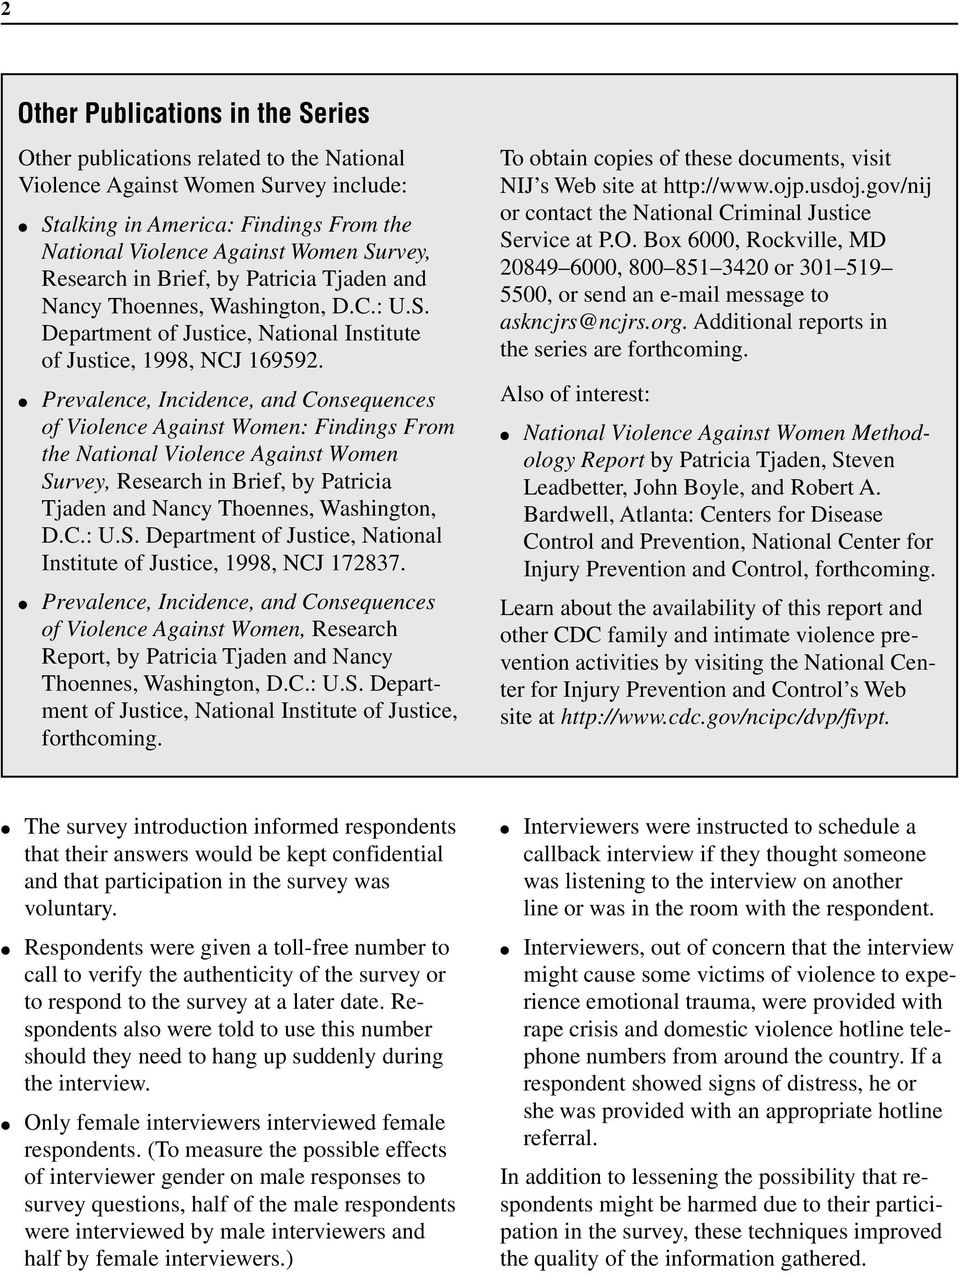 Prevalence, Incidence, and Consequences of Violence Against Women: Findings From the National Violence Against Women Survey, Research in Brief, by Patricia Tjaden and Nancy Thoennes, Washington, D.C.: U.